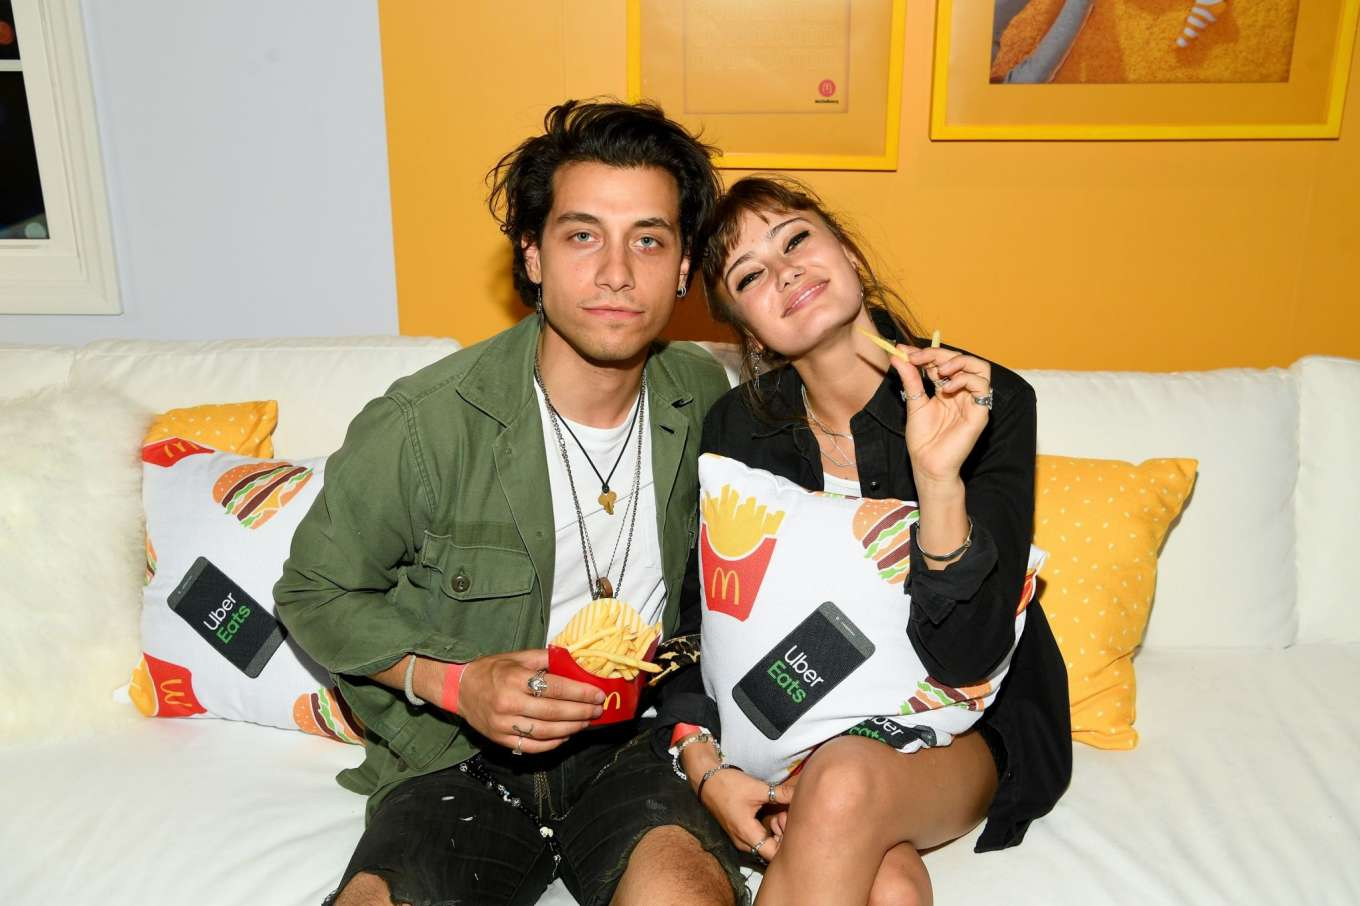 Ella Purnell - McDonald's & UberEats: McDelivery's Night In Celebration in NY